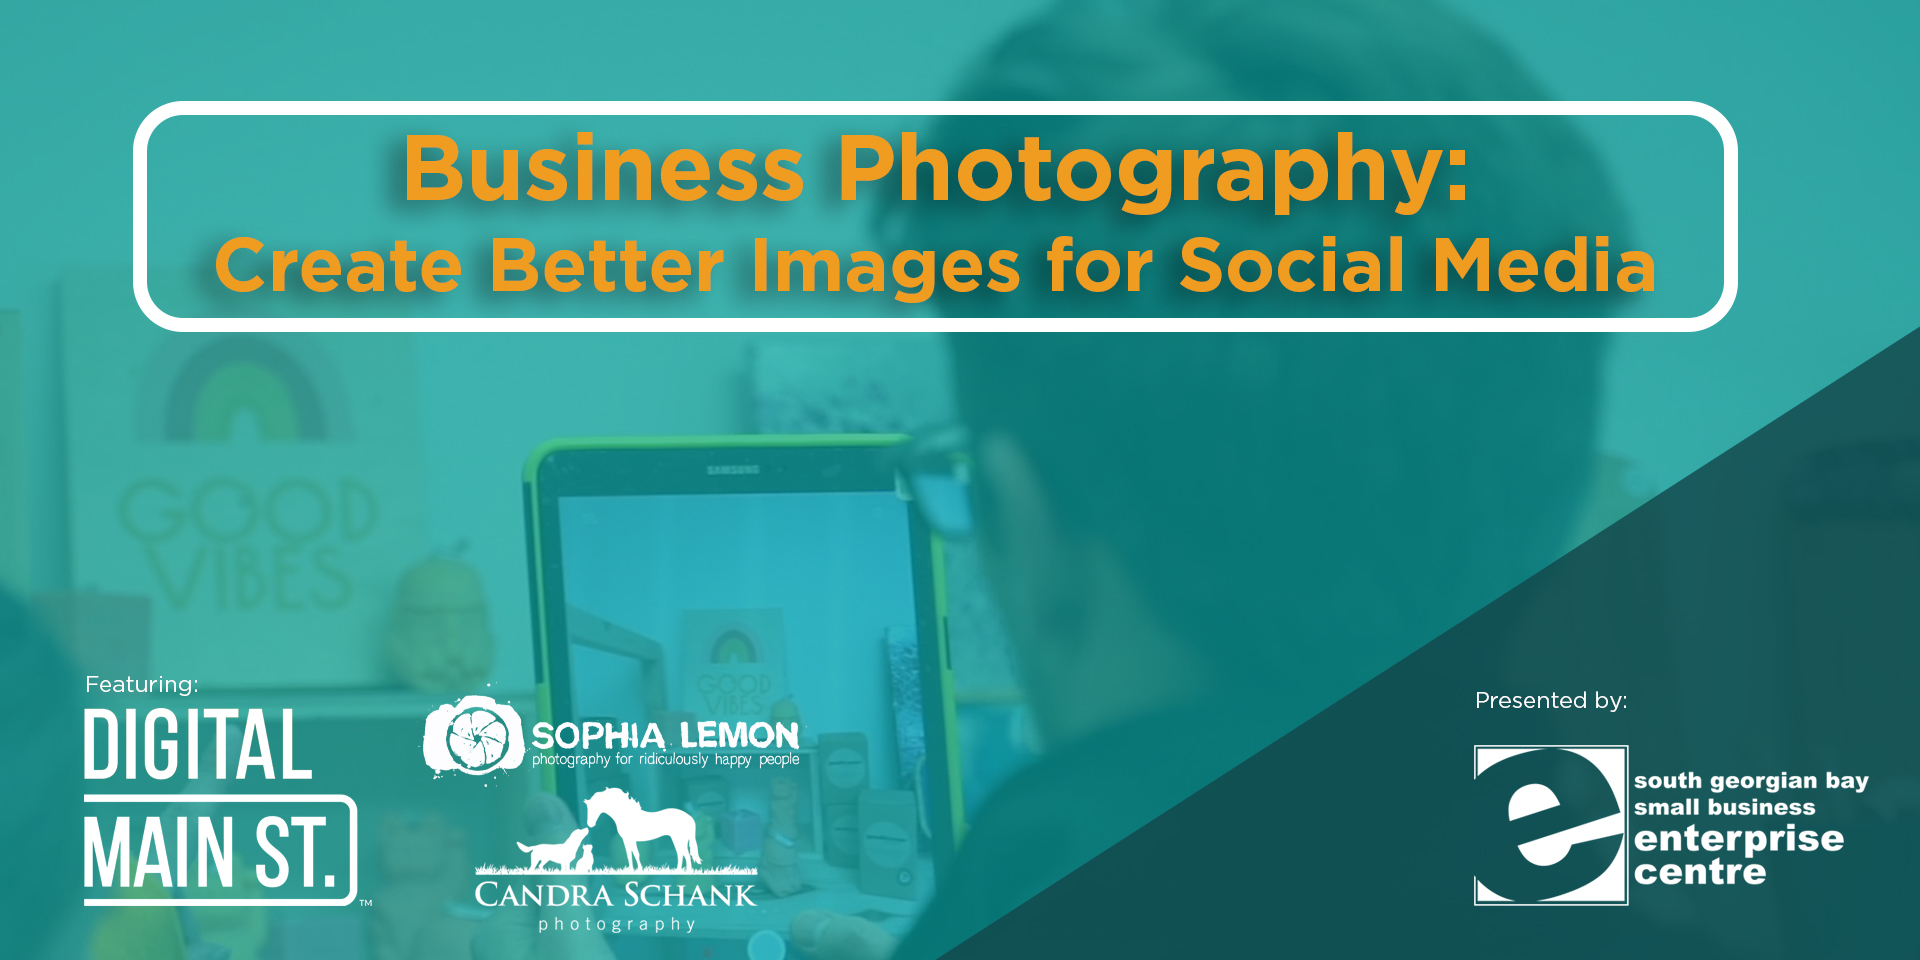 Access to webinar on Business Photography: Create Better Images for Social Media